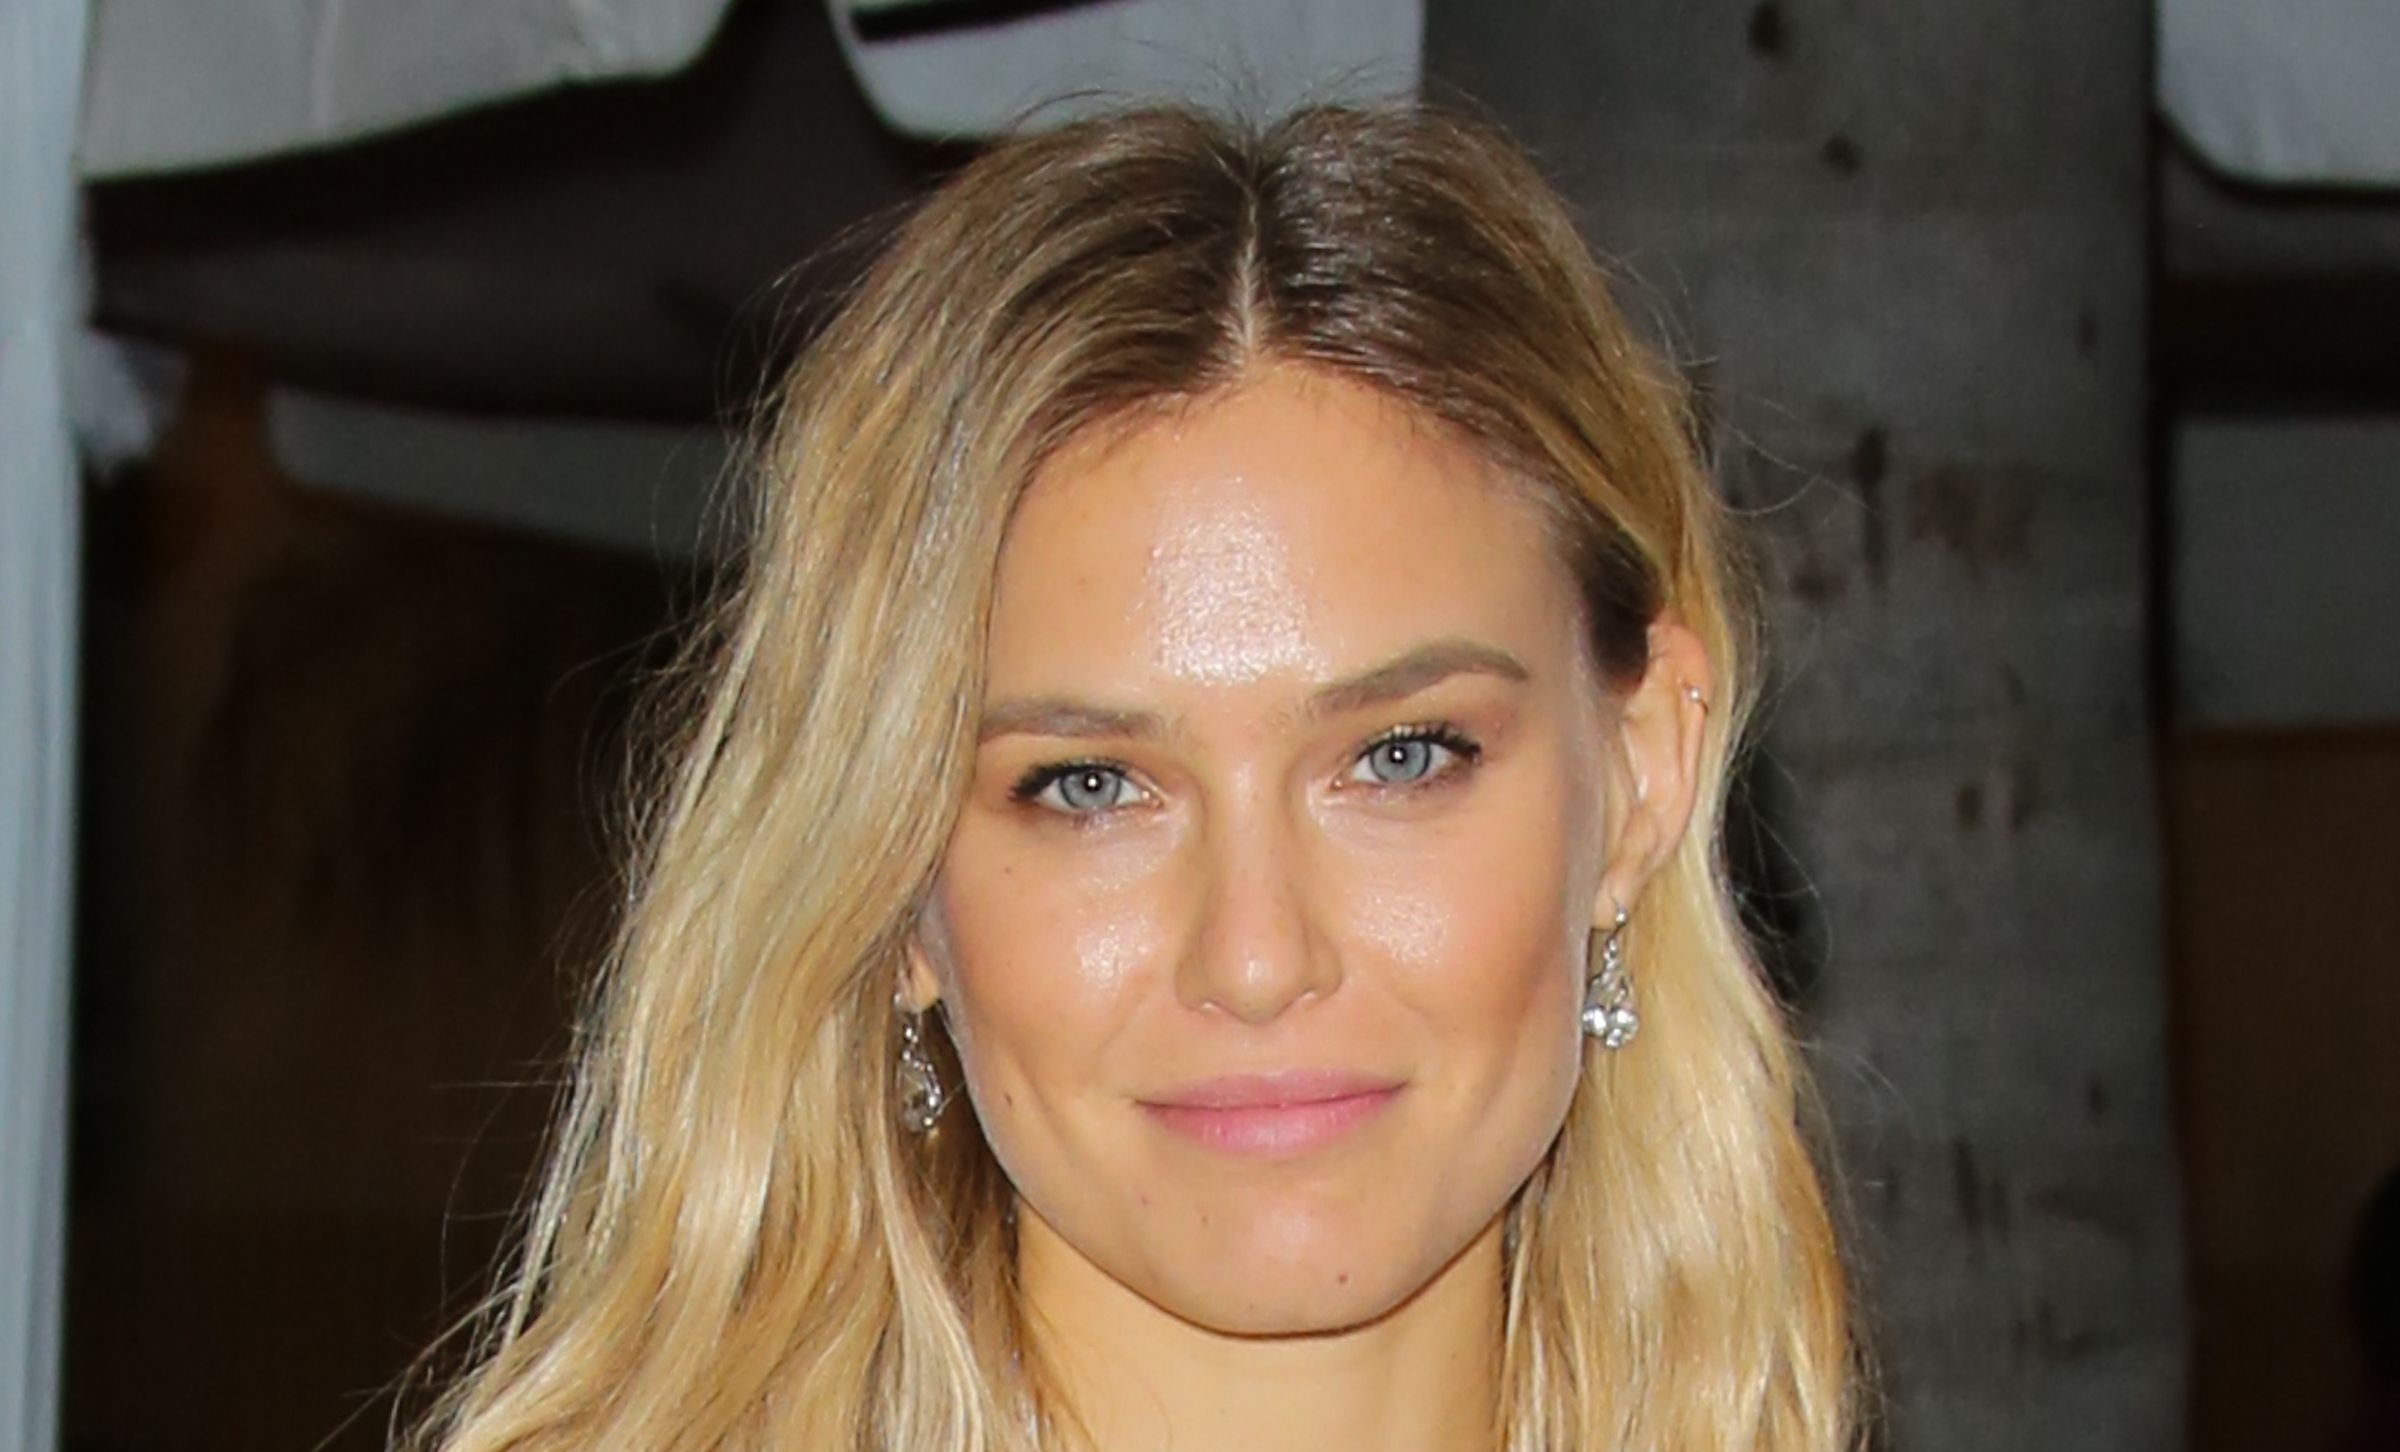 Bar Refaeli Computer Wallpaper